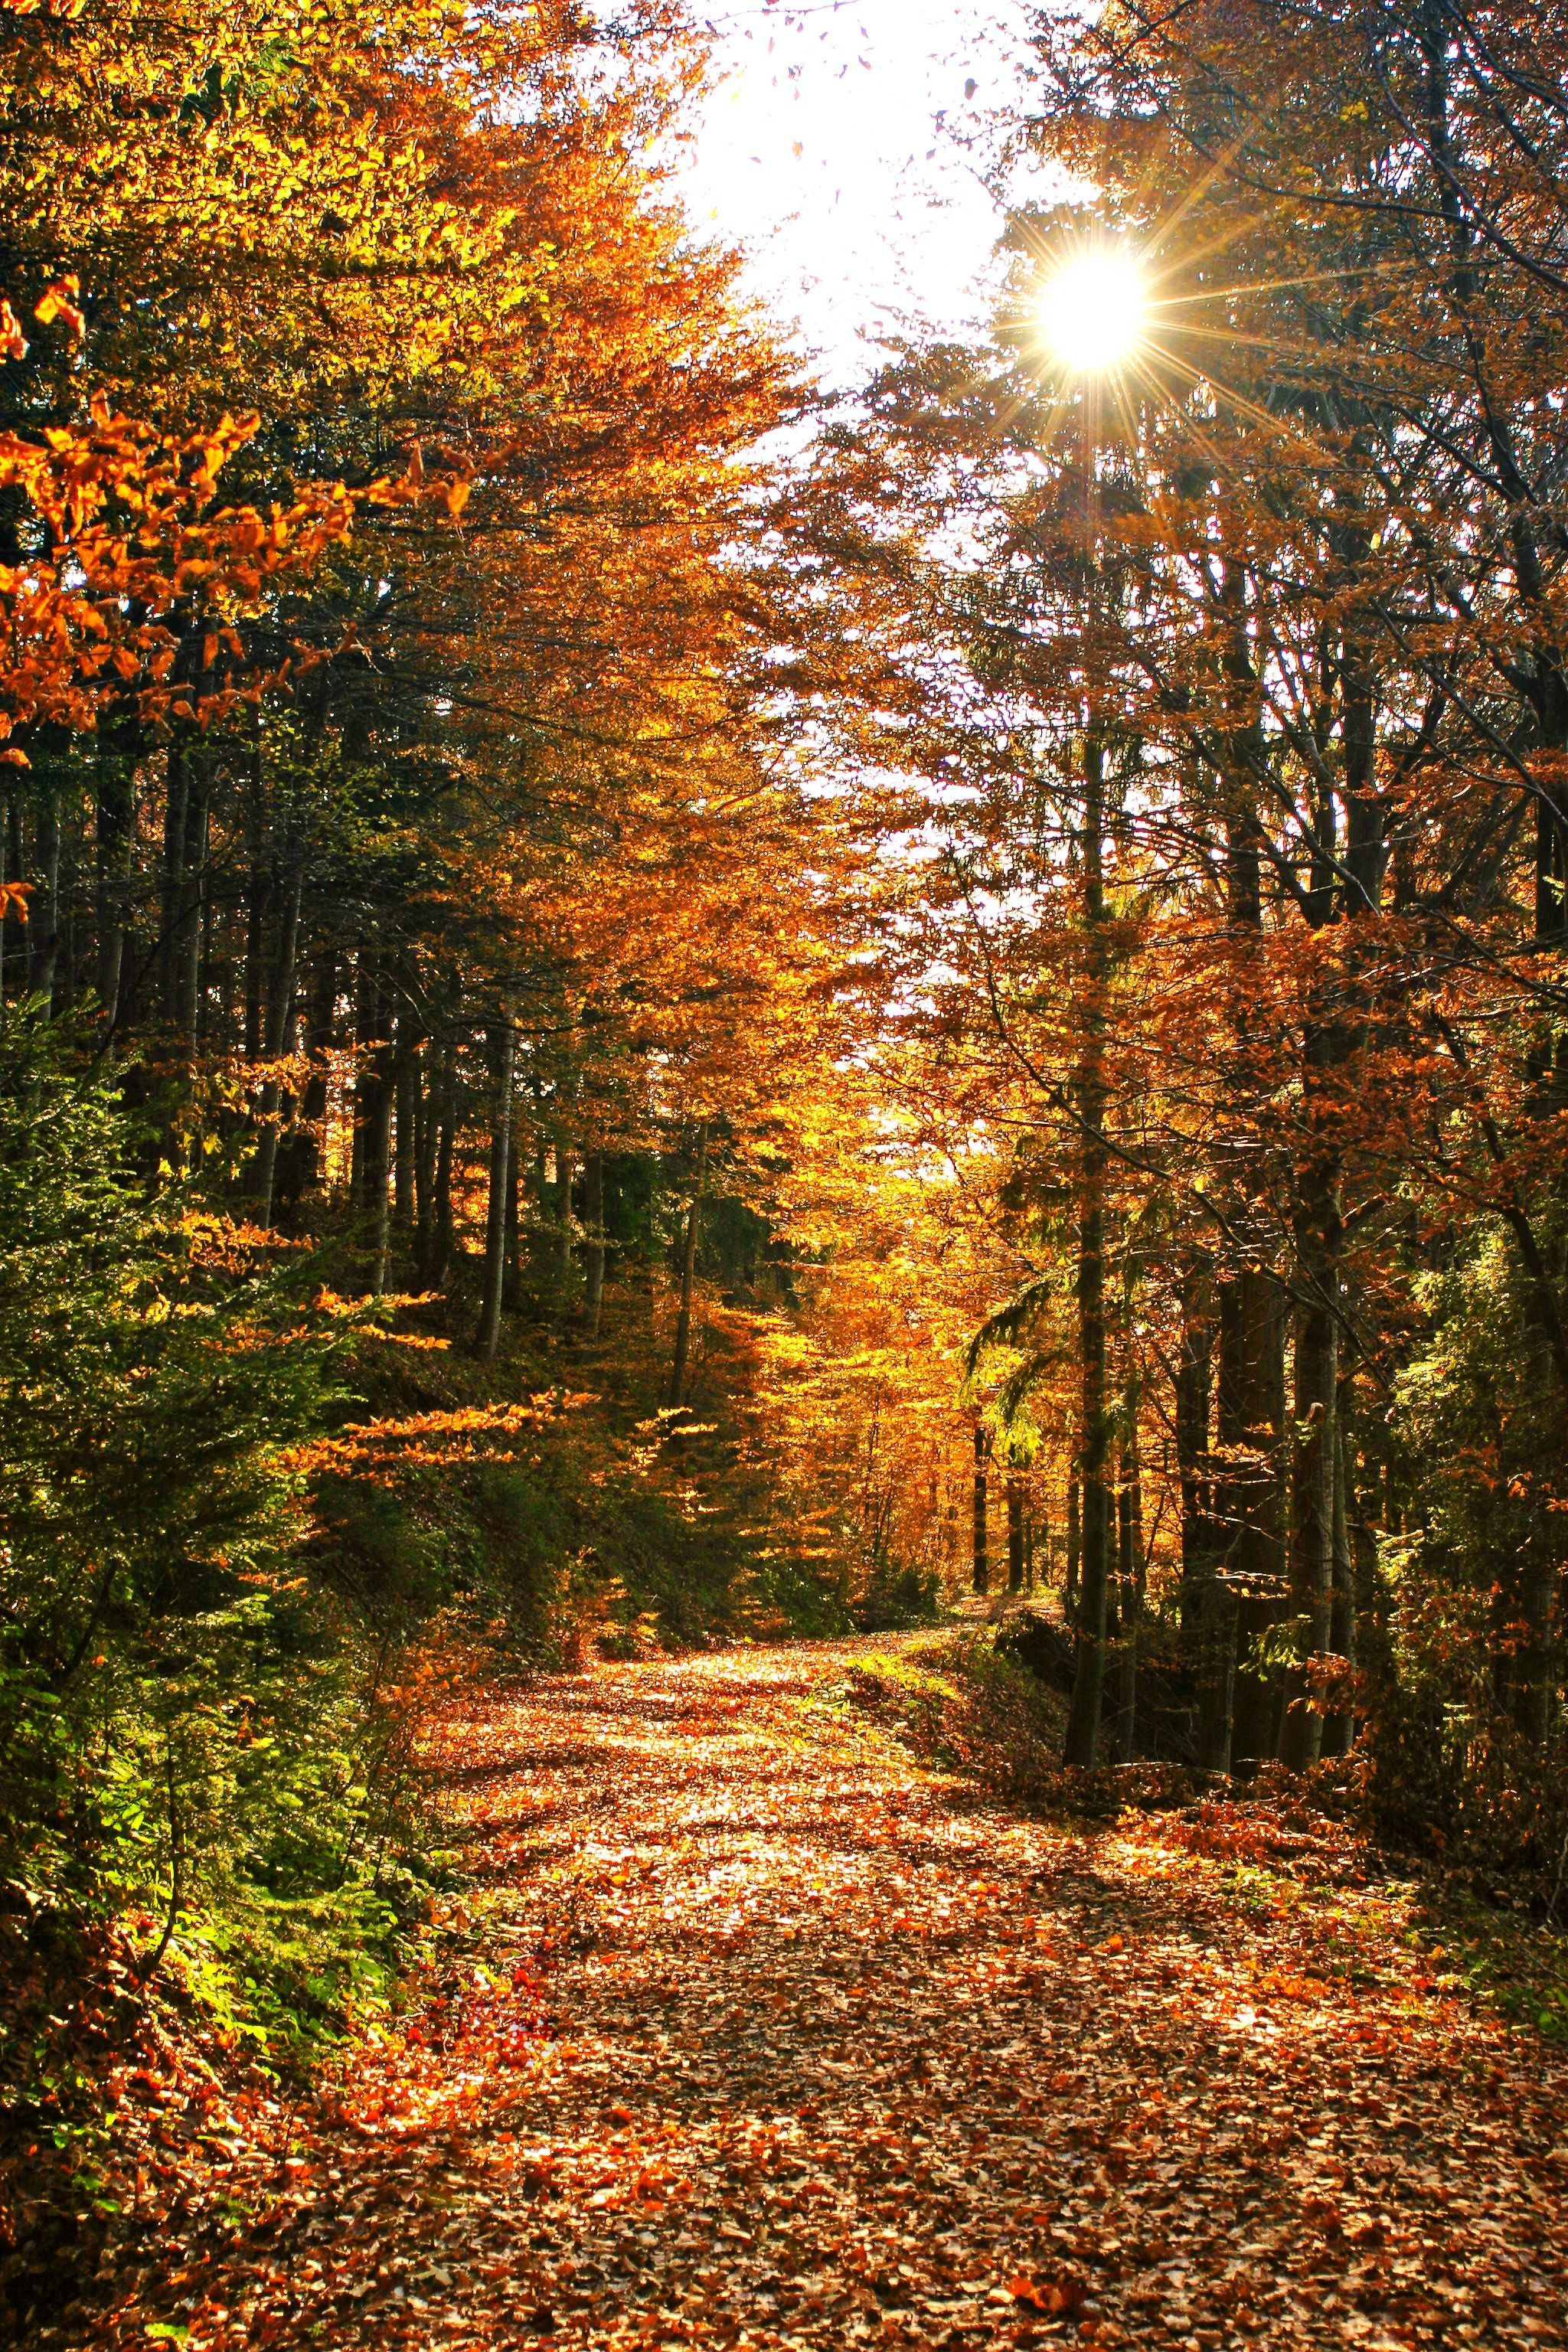 Thoughts about all those leaves we raked as kids only to turn around and jump in them, life was simple fun!